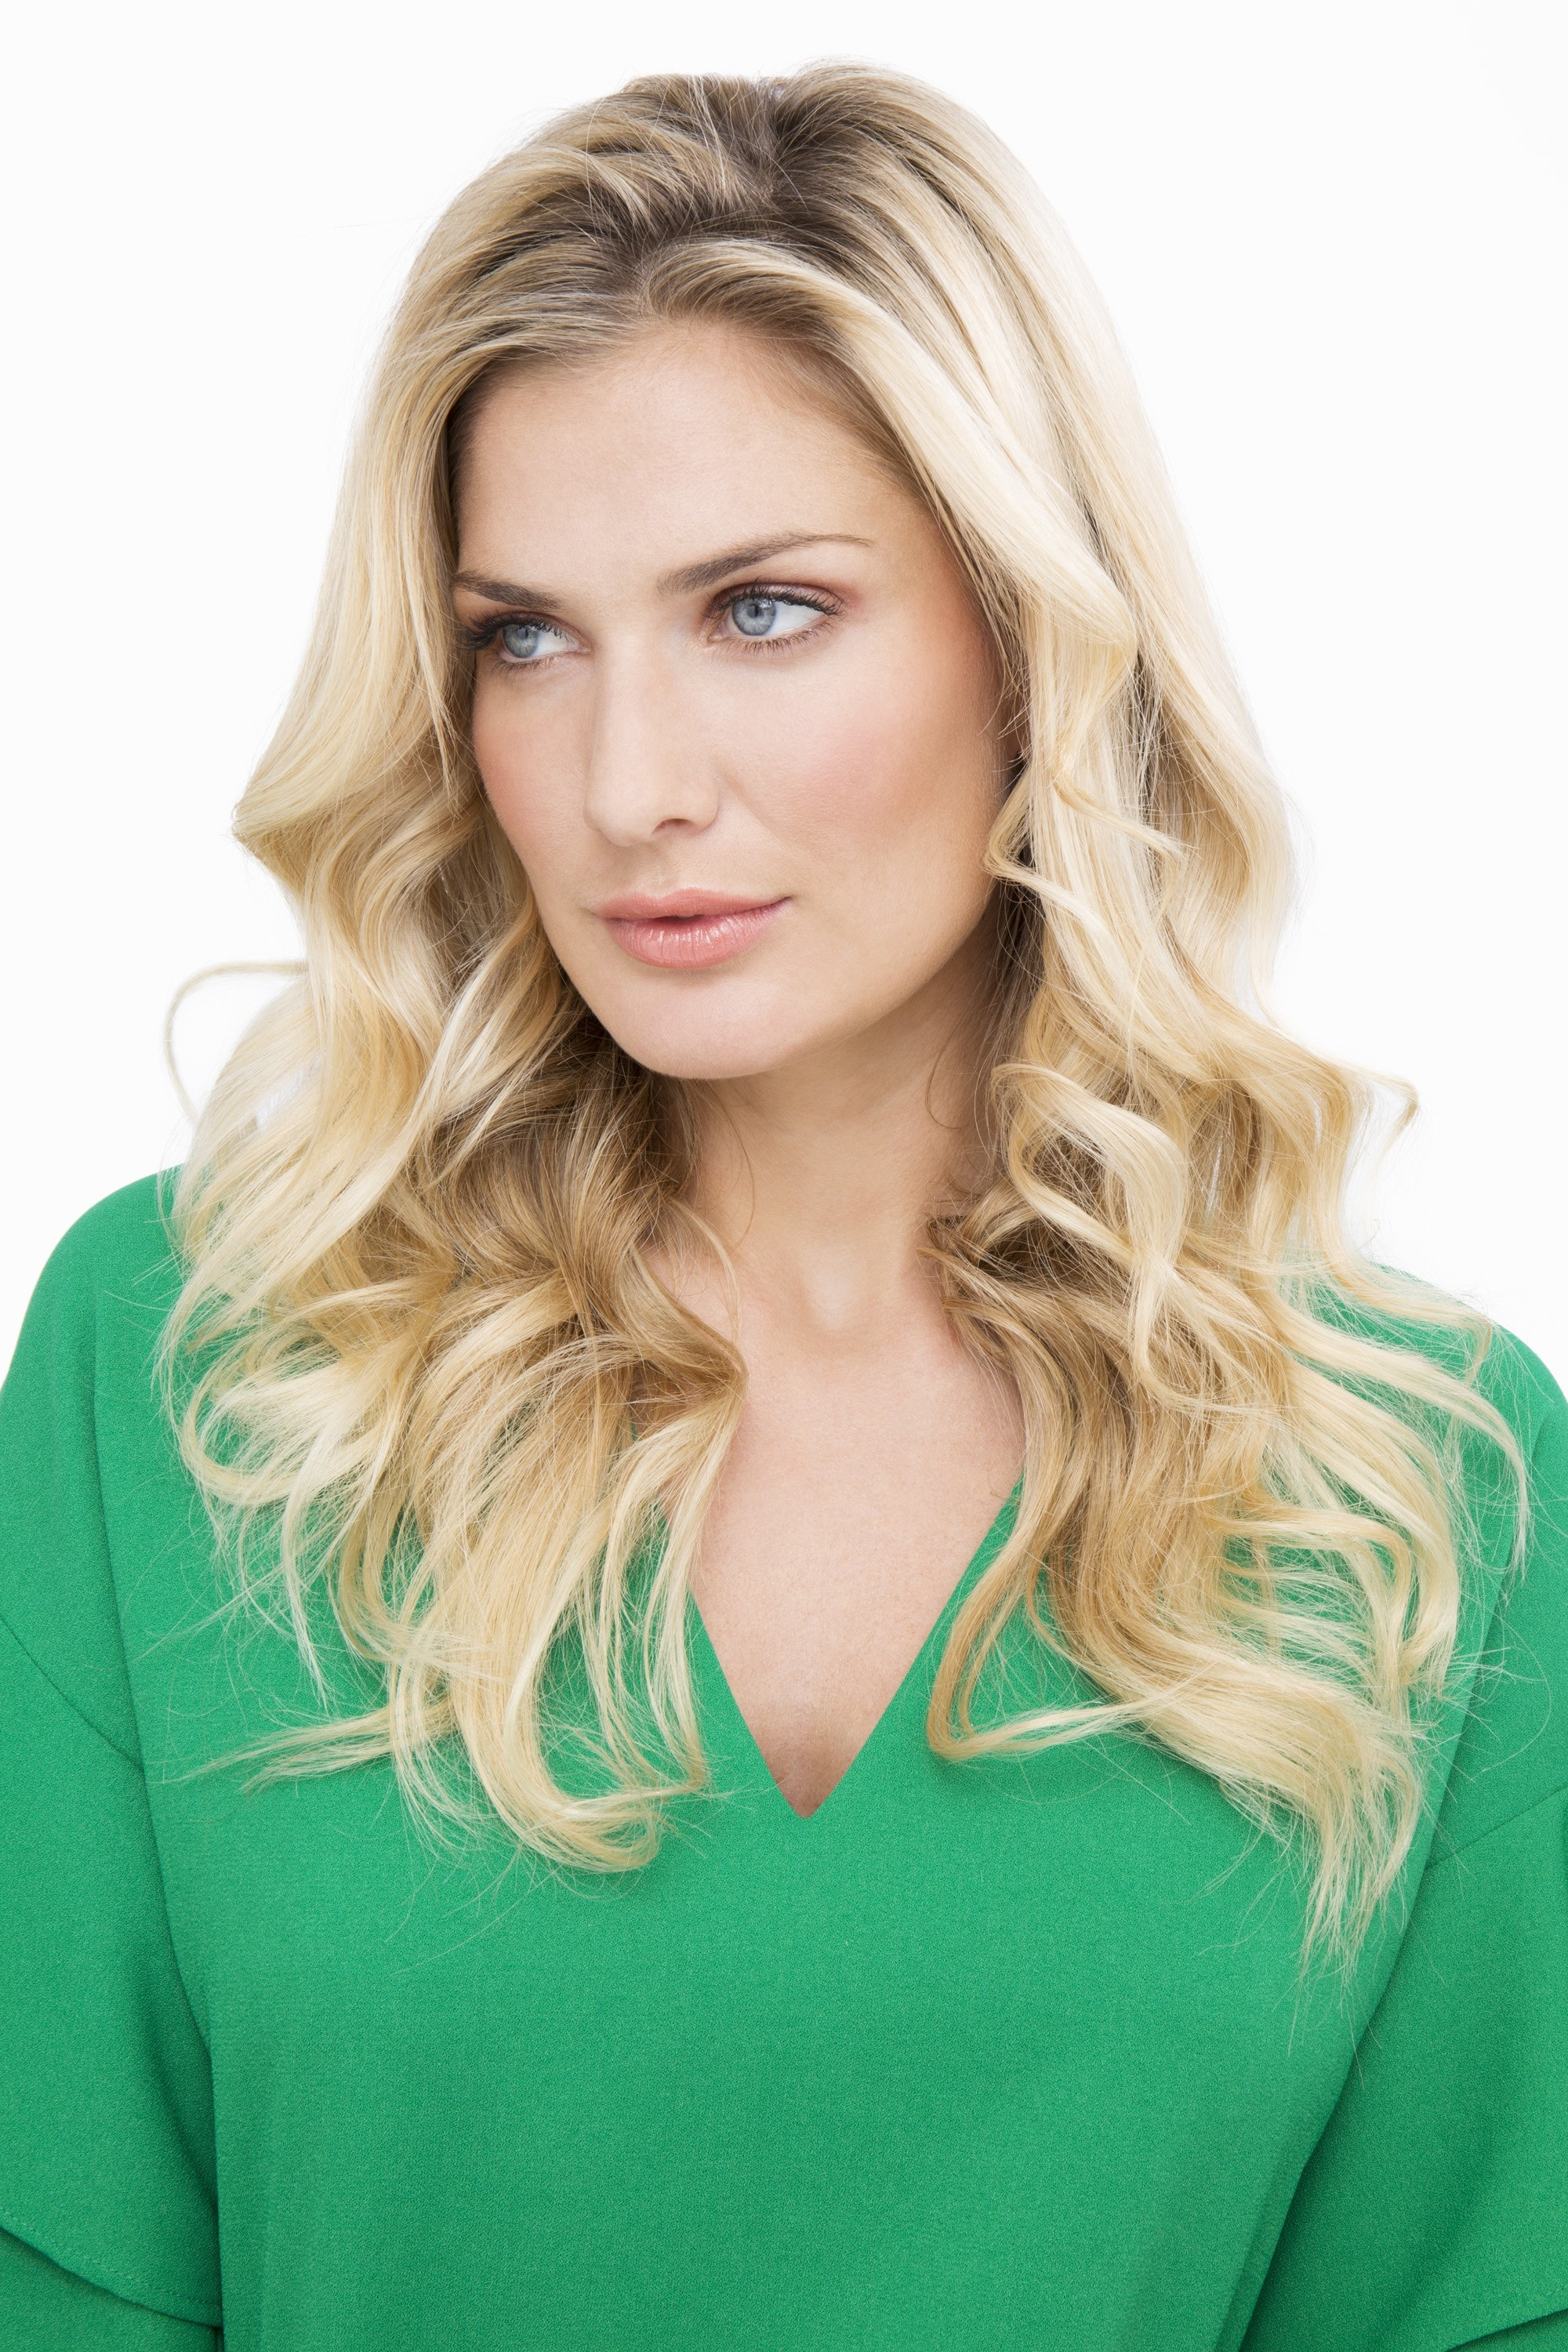 blonde model wearing a green v neck top with long curly hair